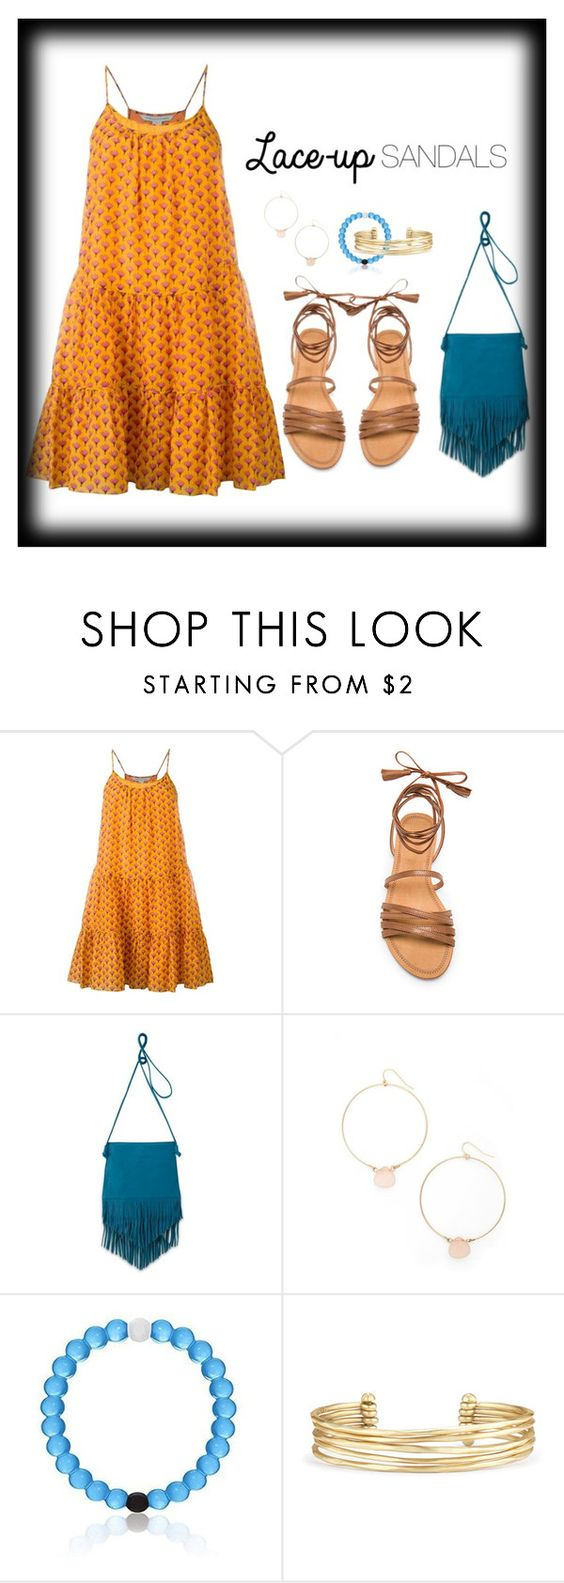 """Sandals"" by lsmarick ❤ liked on Polyvore featuring Diane Von Furstenberg, ále by Alessandra, HOBO, Ettika, Stella & Dot, contestentry, laceupsandals and PVStyleInsiderContest"